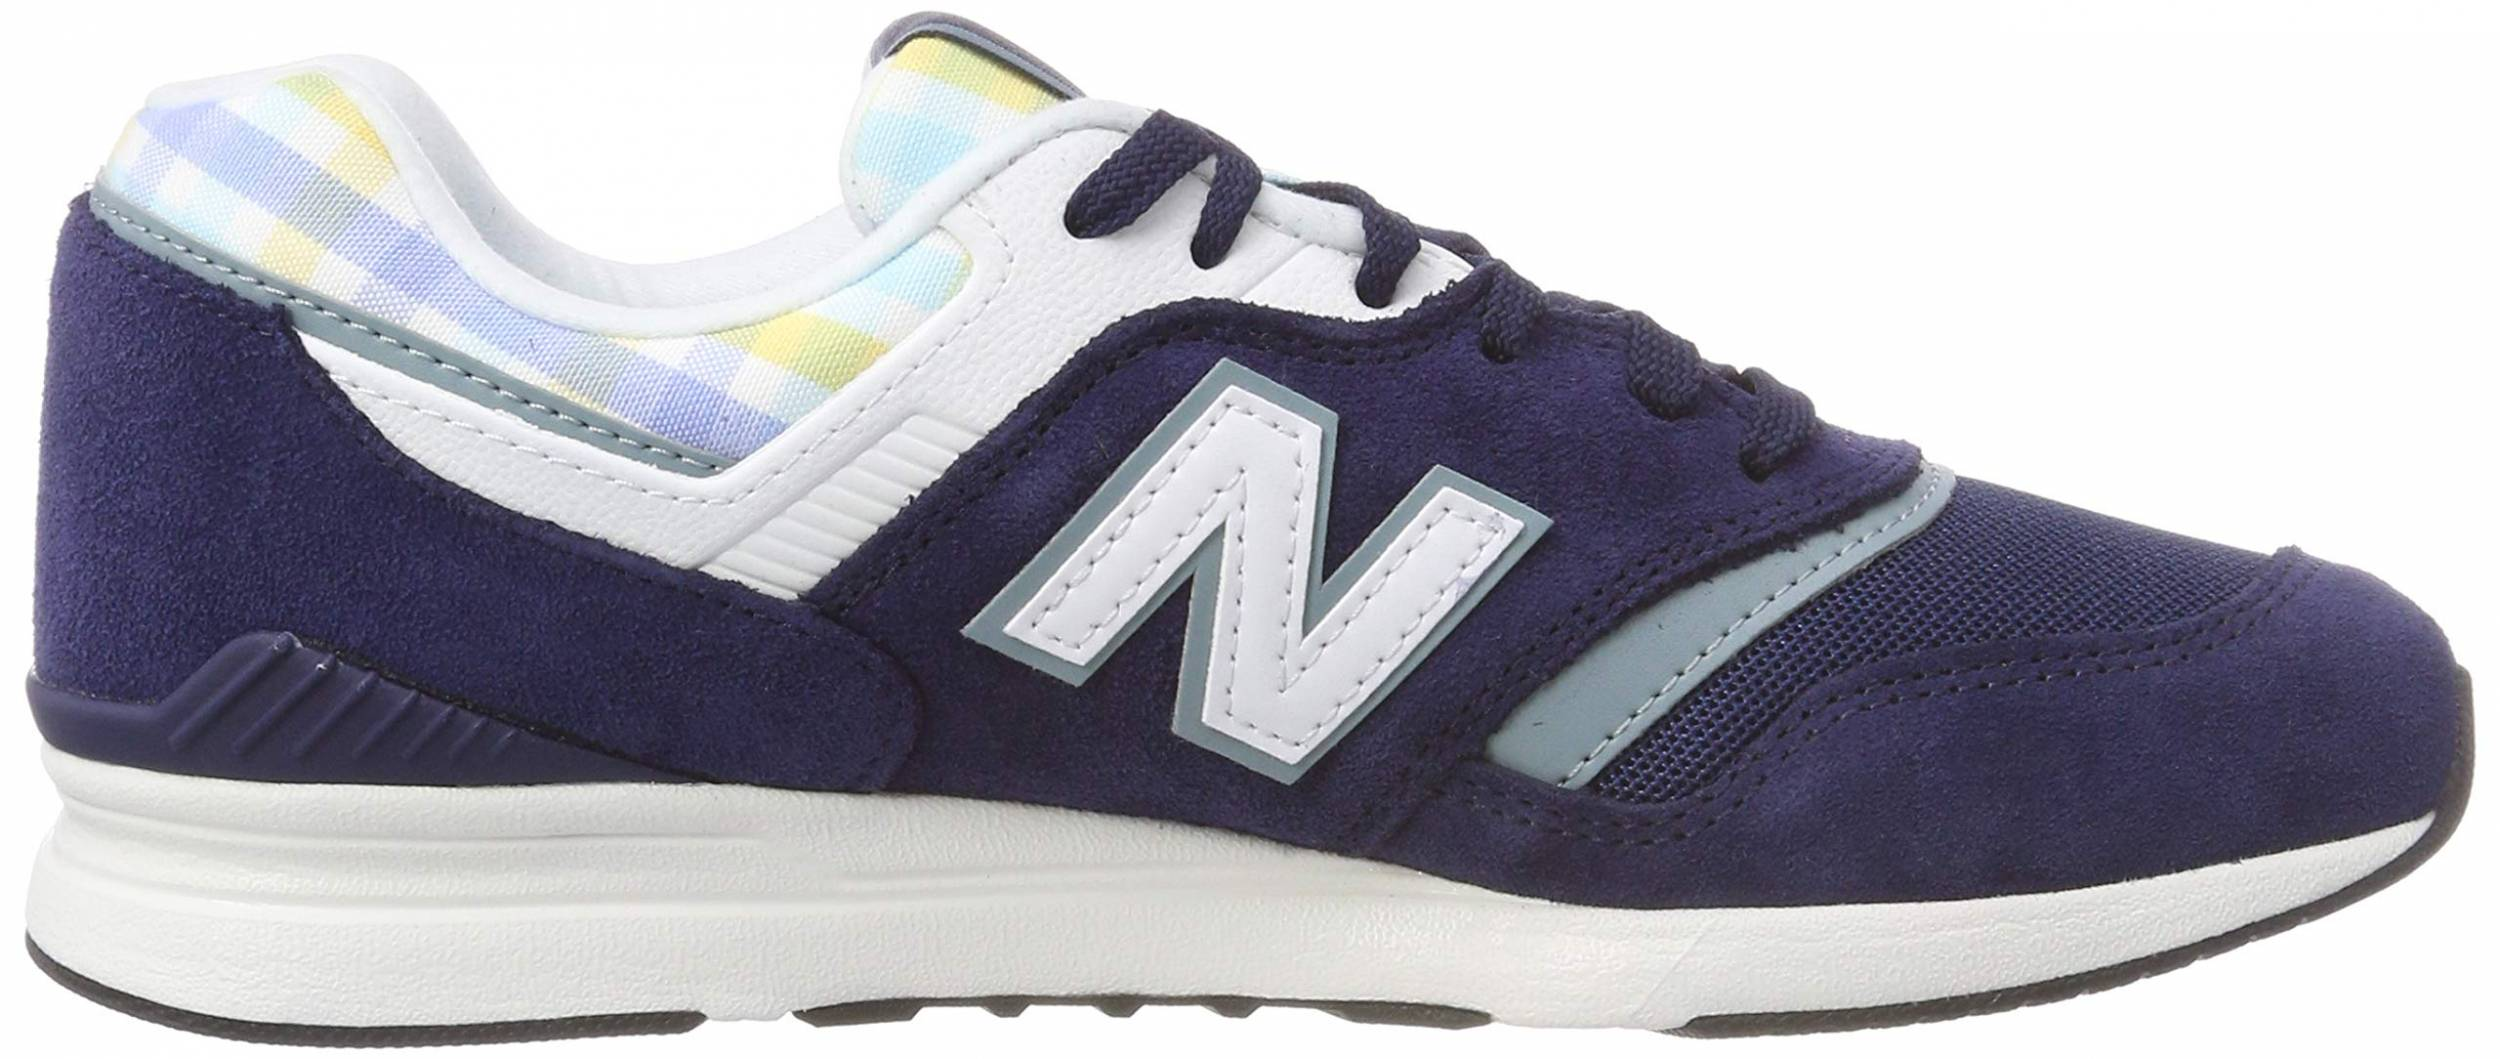 New Balance 697 sneakers in 3 colors (only $61) | RunRepeat